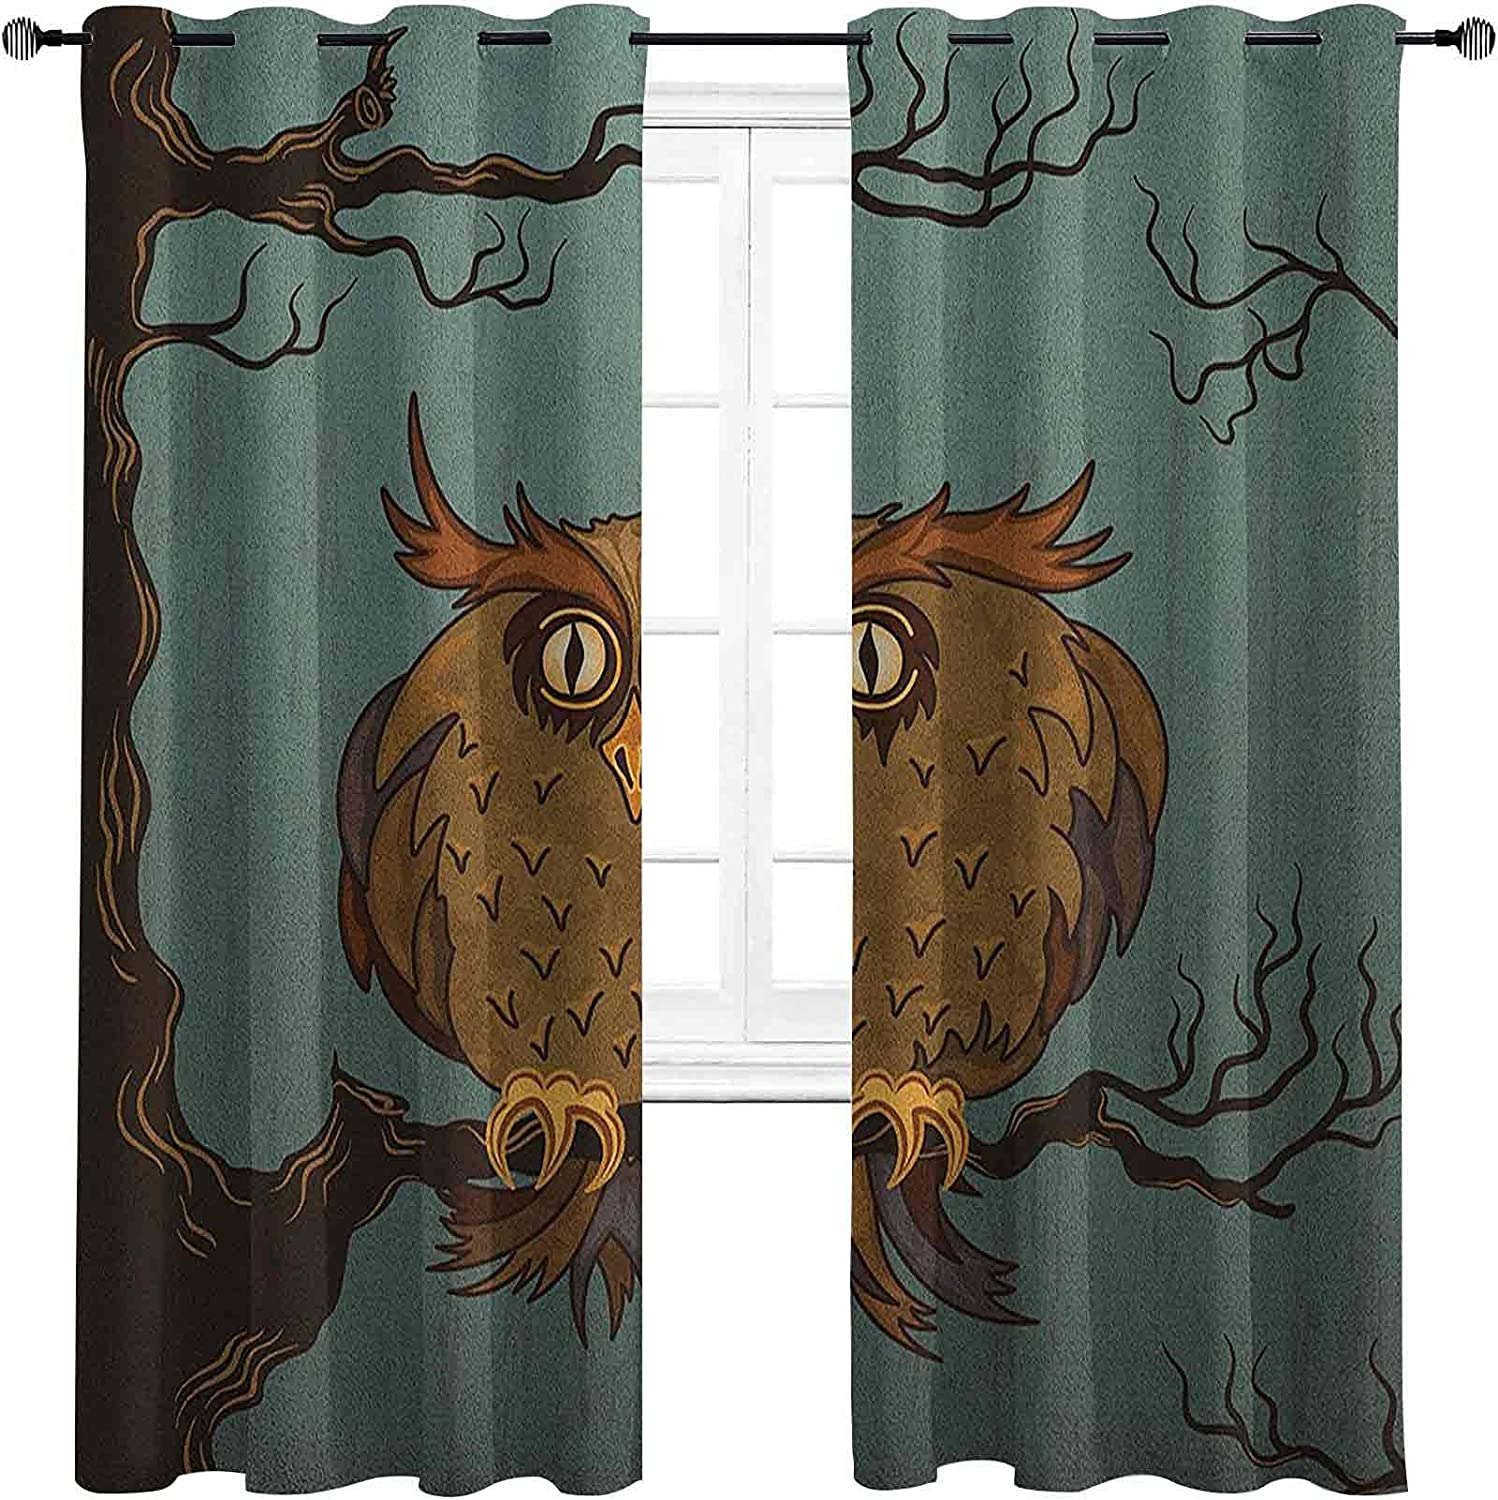 Owl New sales At the price Blackout Curtains with Grommets Exhausted Hangover darken T